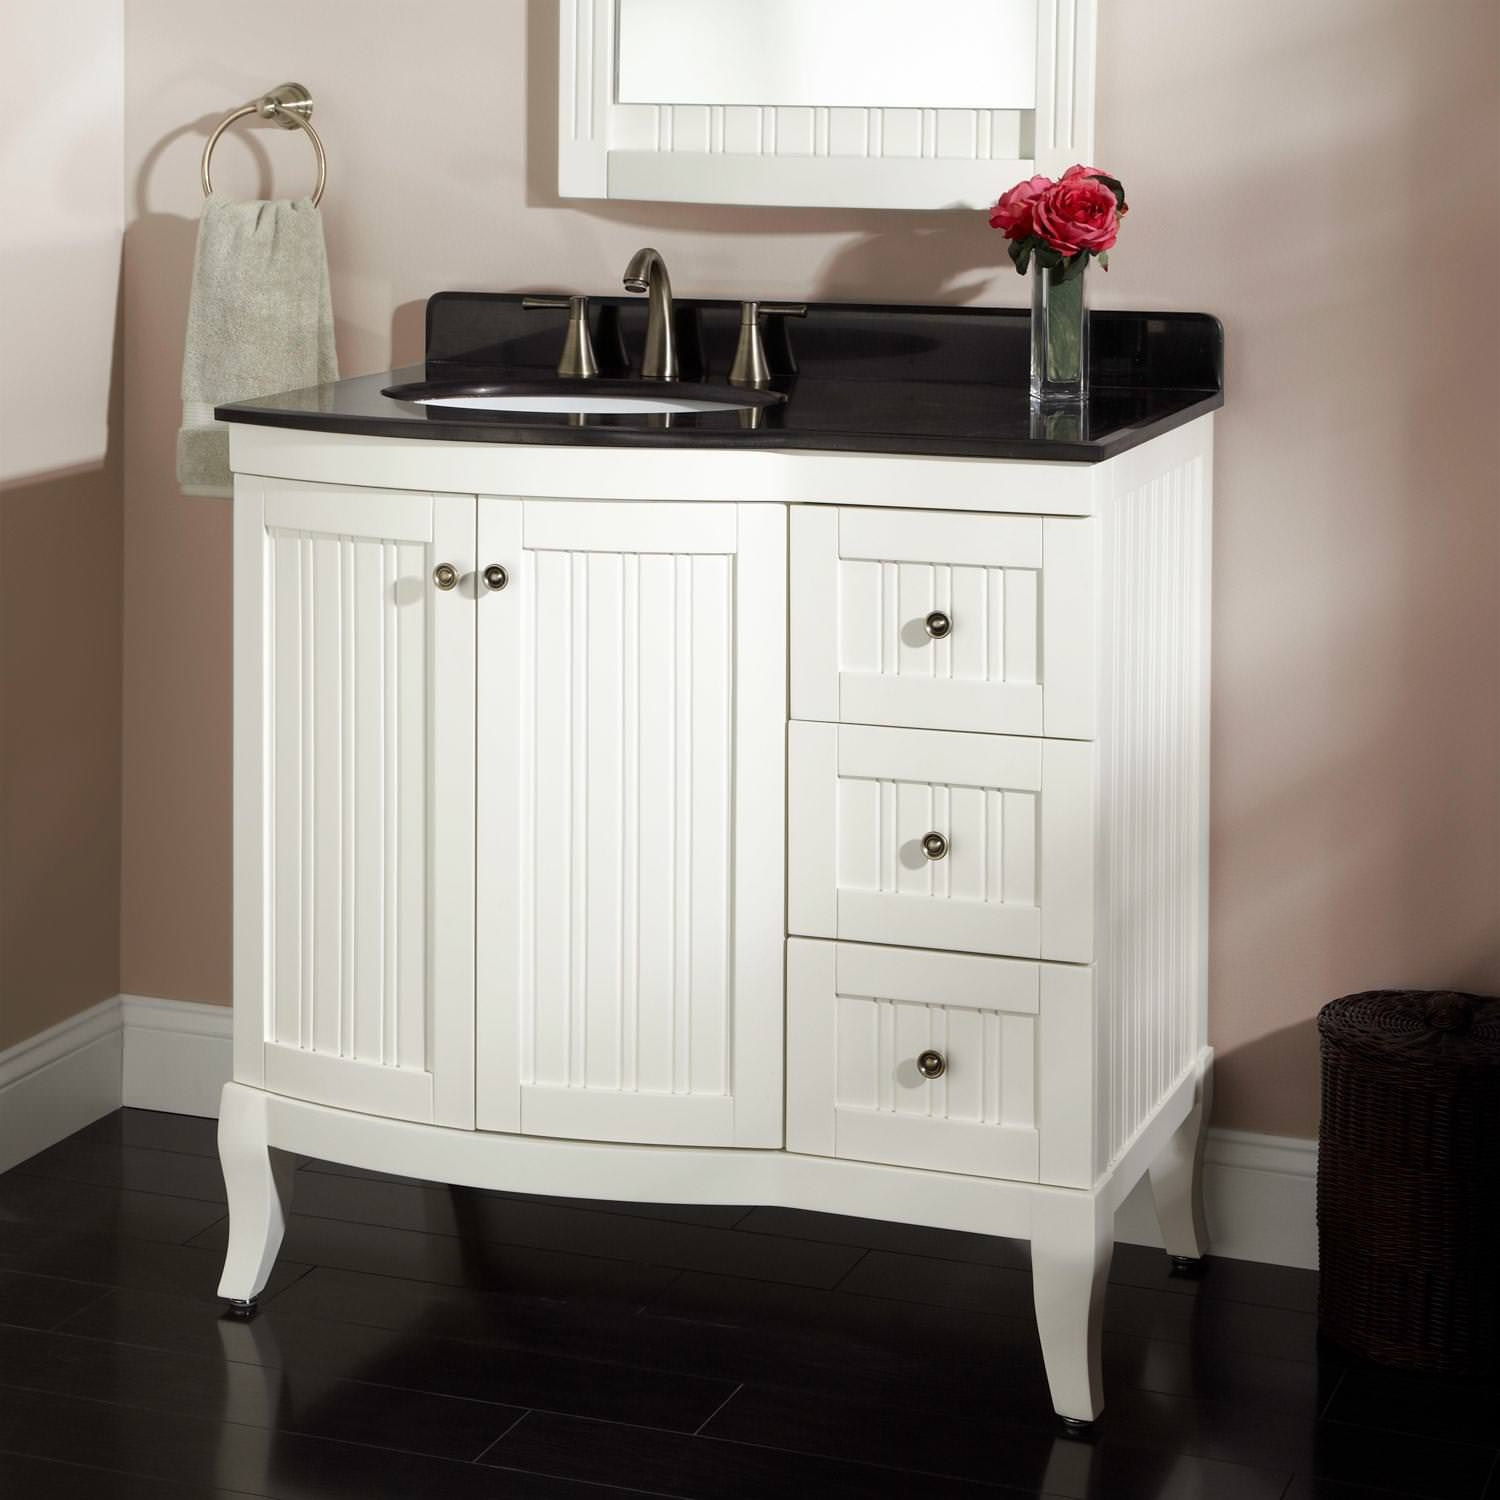 Permalink to 30 Inch Bathroom Vanity With Top And Drawers